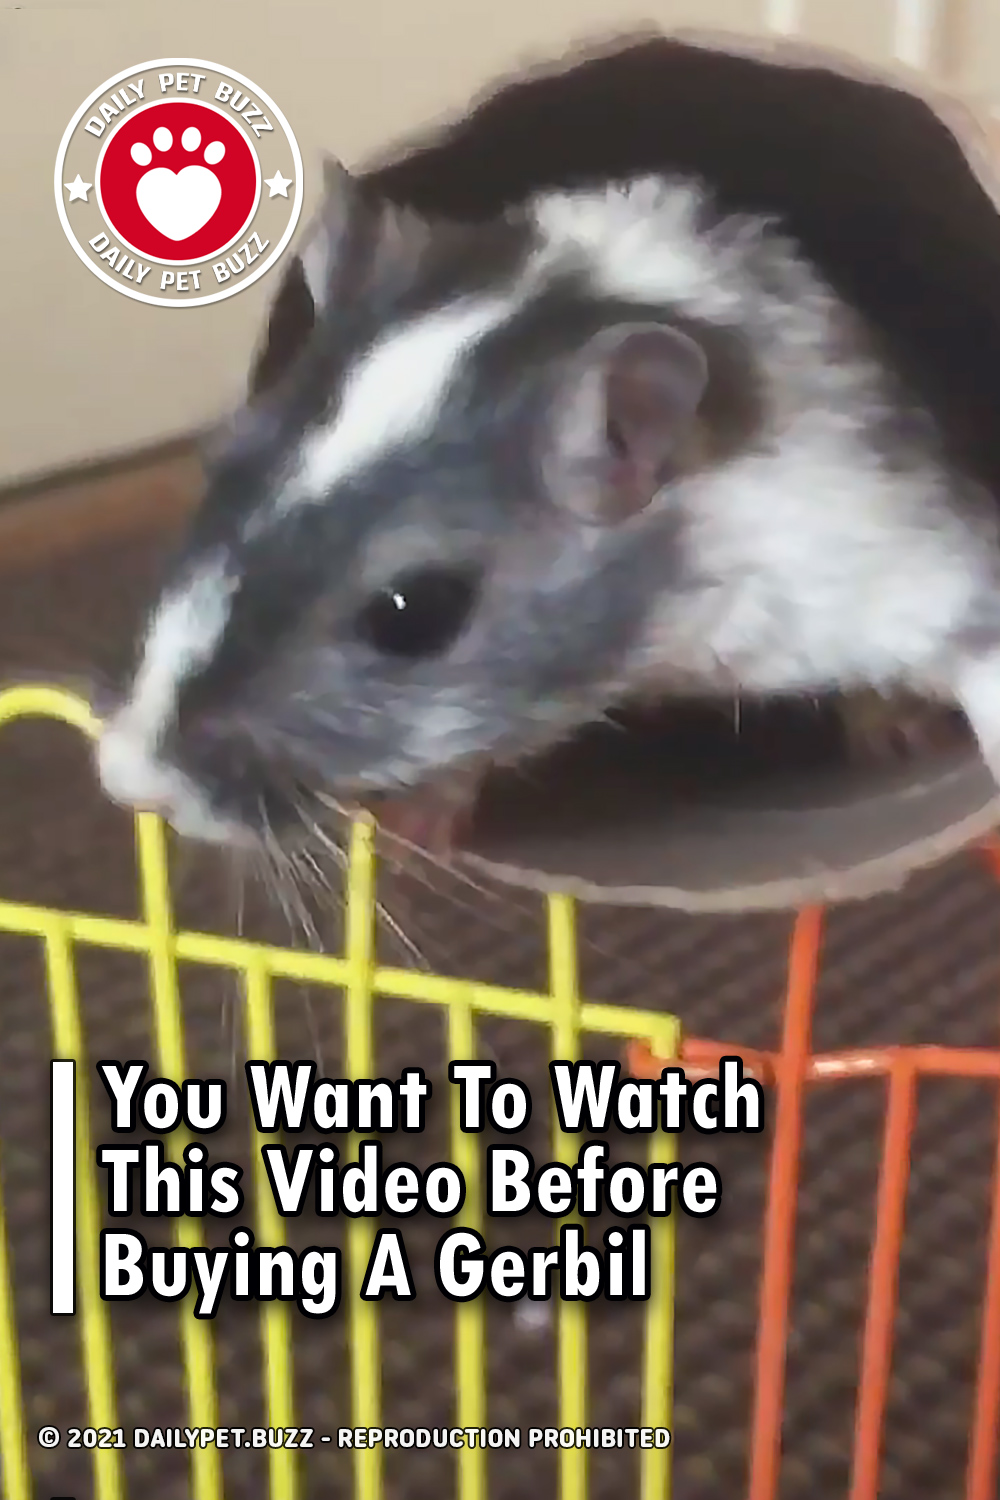 You Want To Watch This Video Before Buying A Gerbil